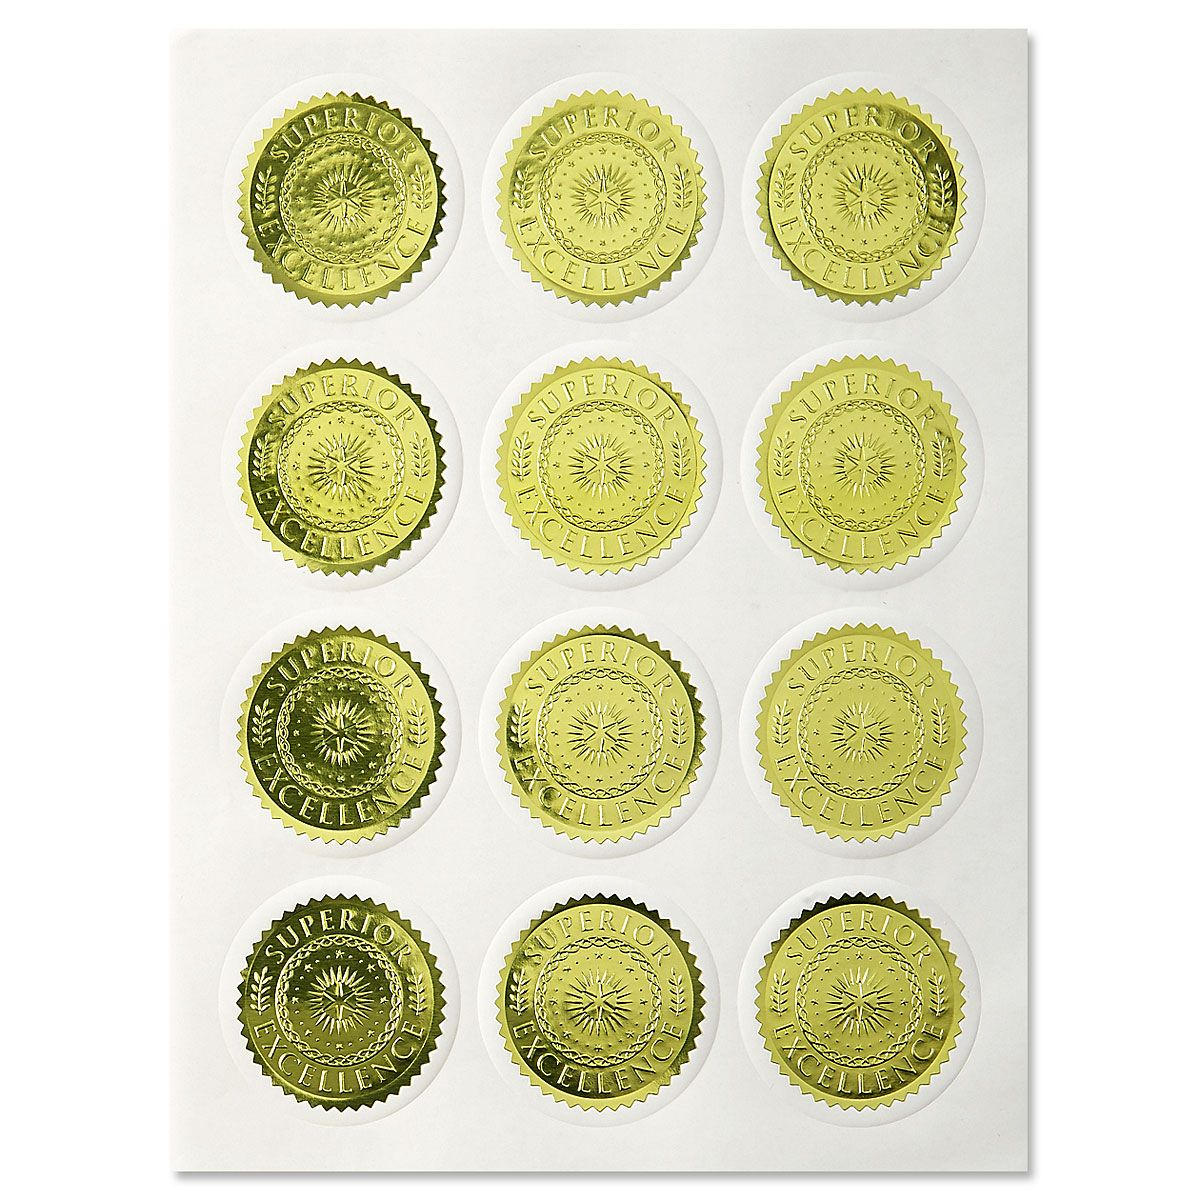 Gold Foil Excellence Certificate Seals